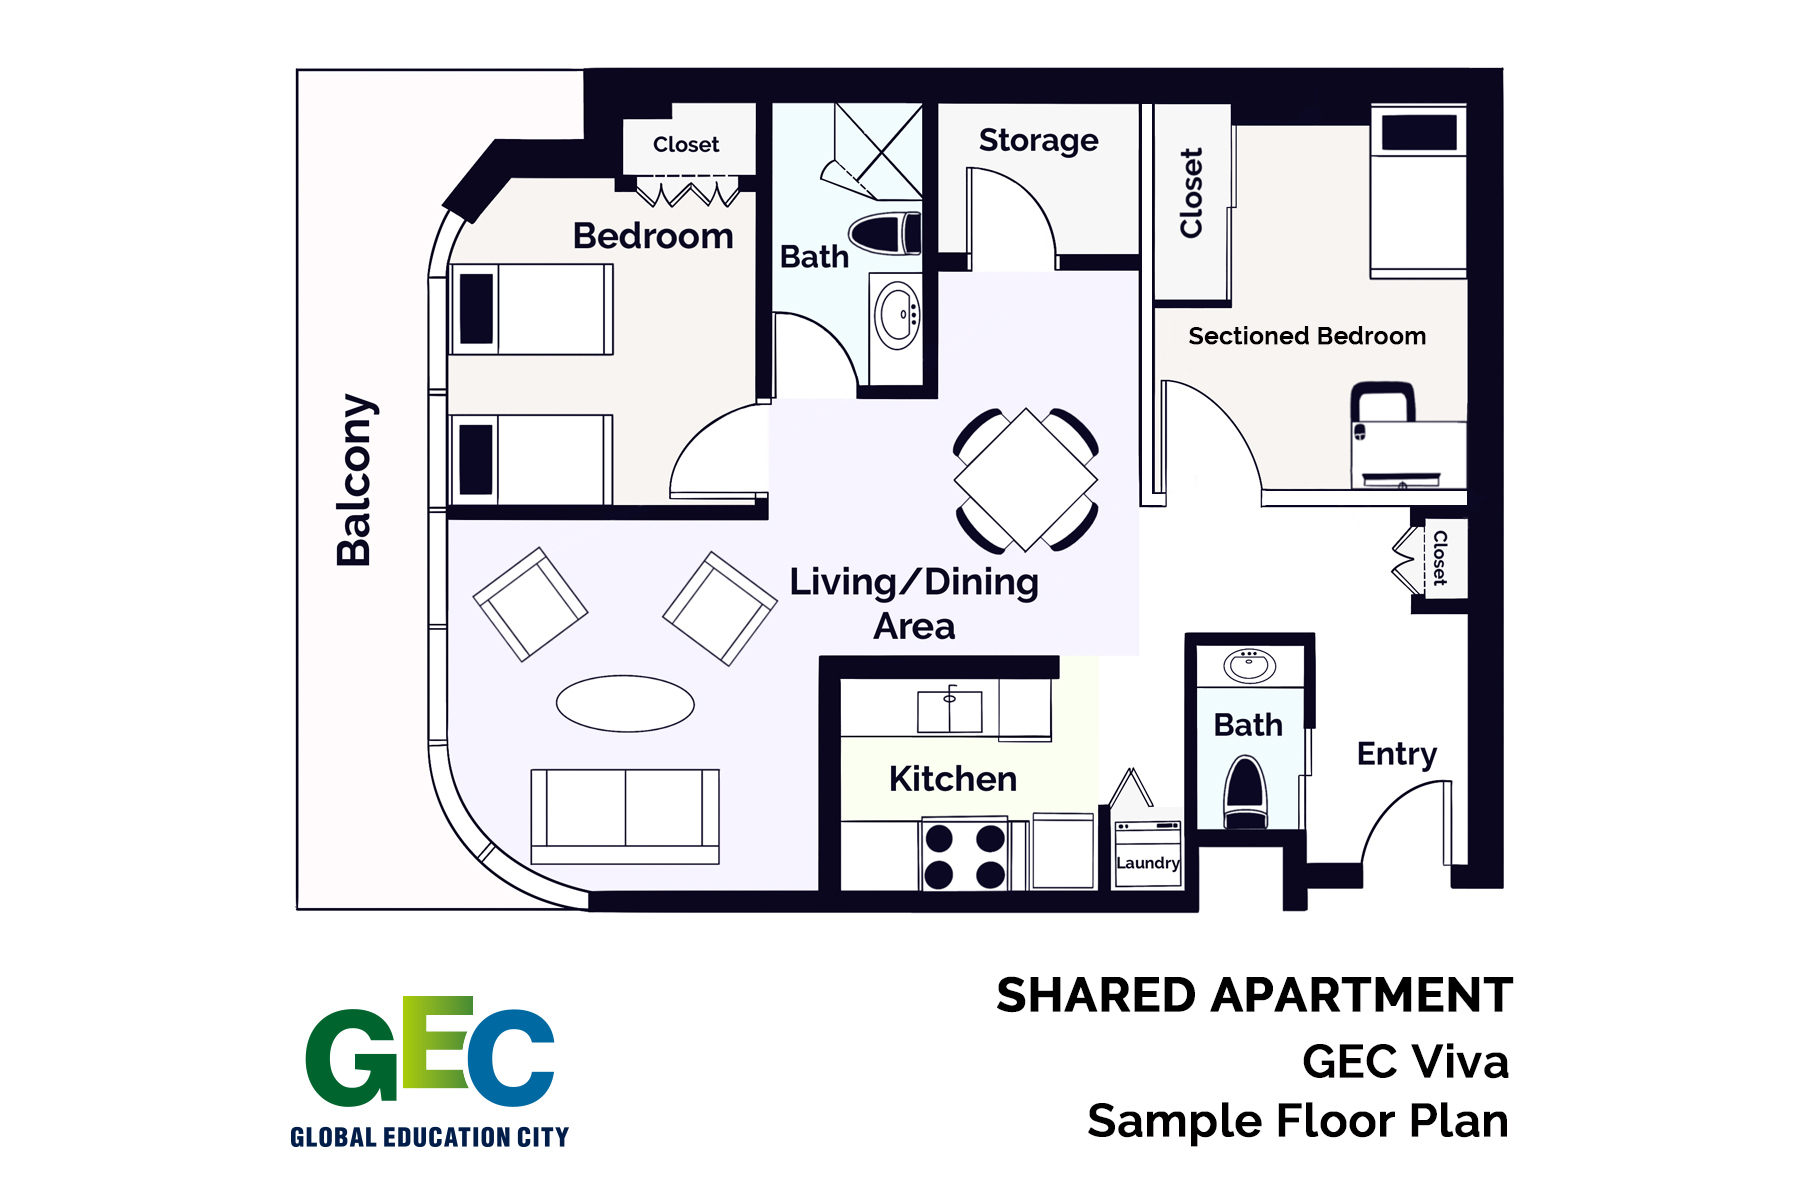 Sectioned Private Bedroom floor plan